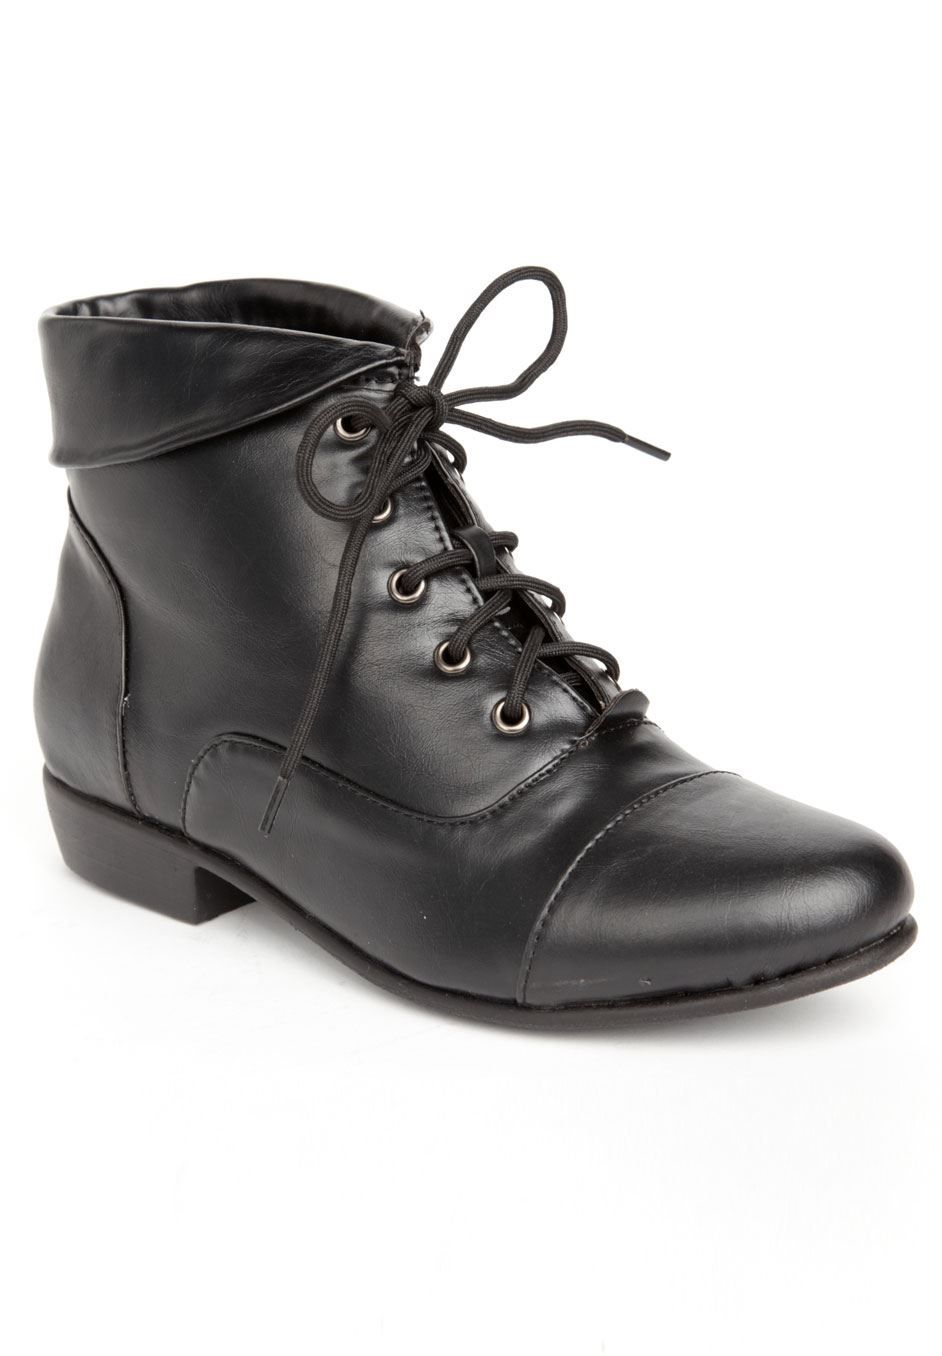 This stylish bootie has CV Flex by Comfortview innovations